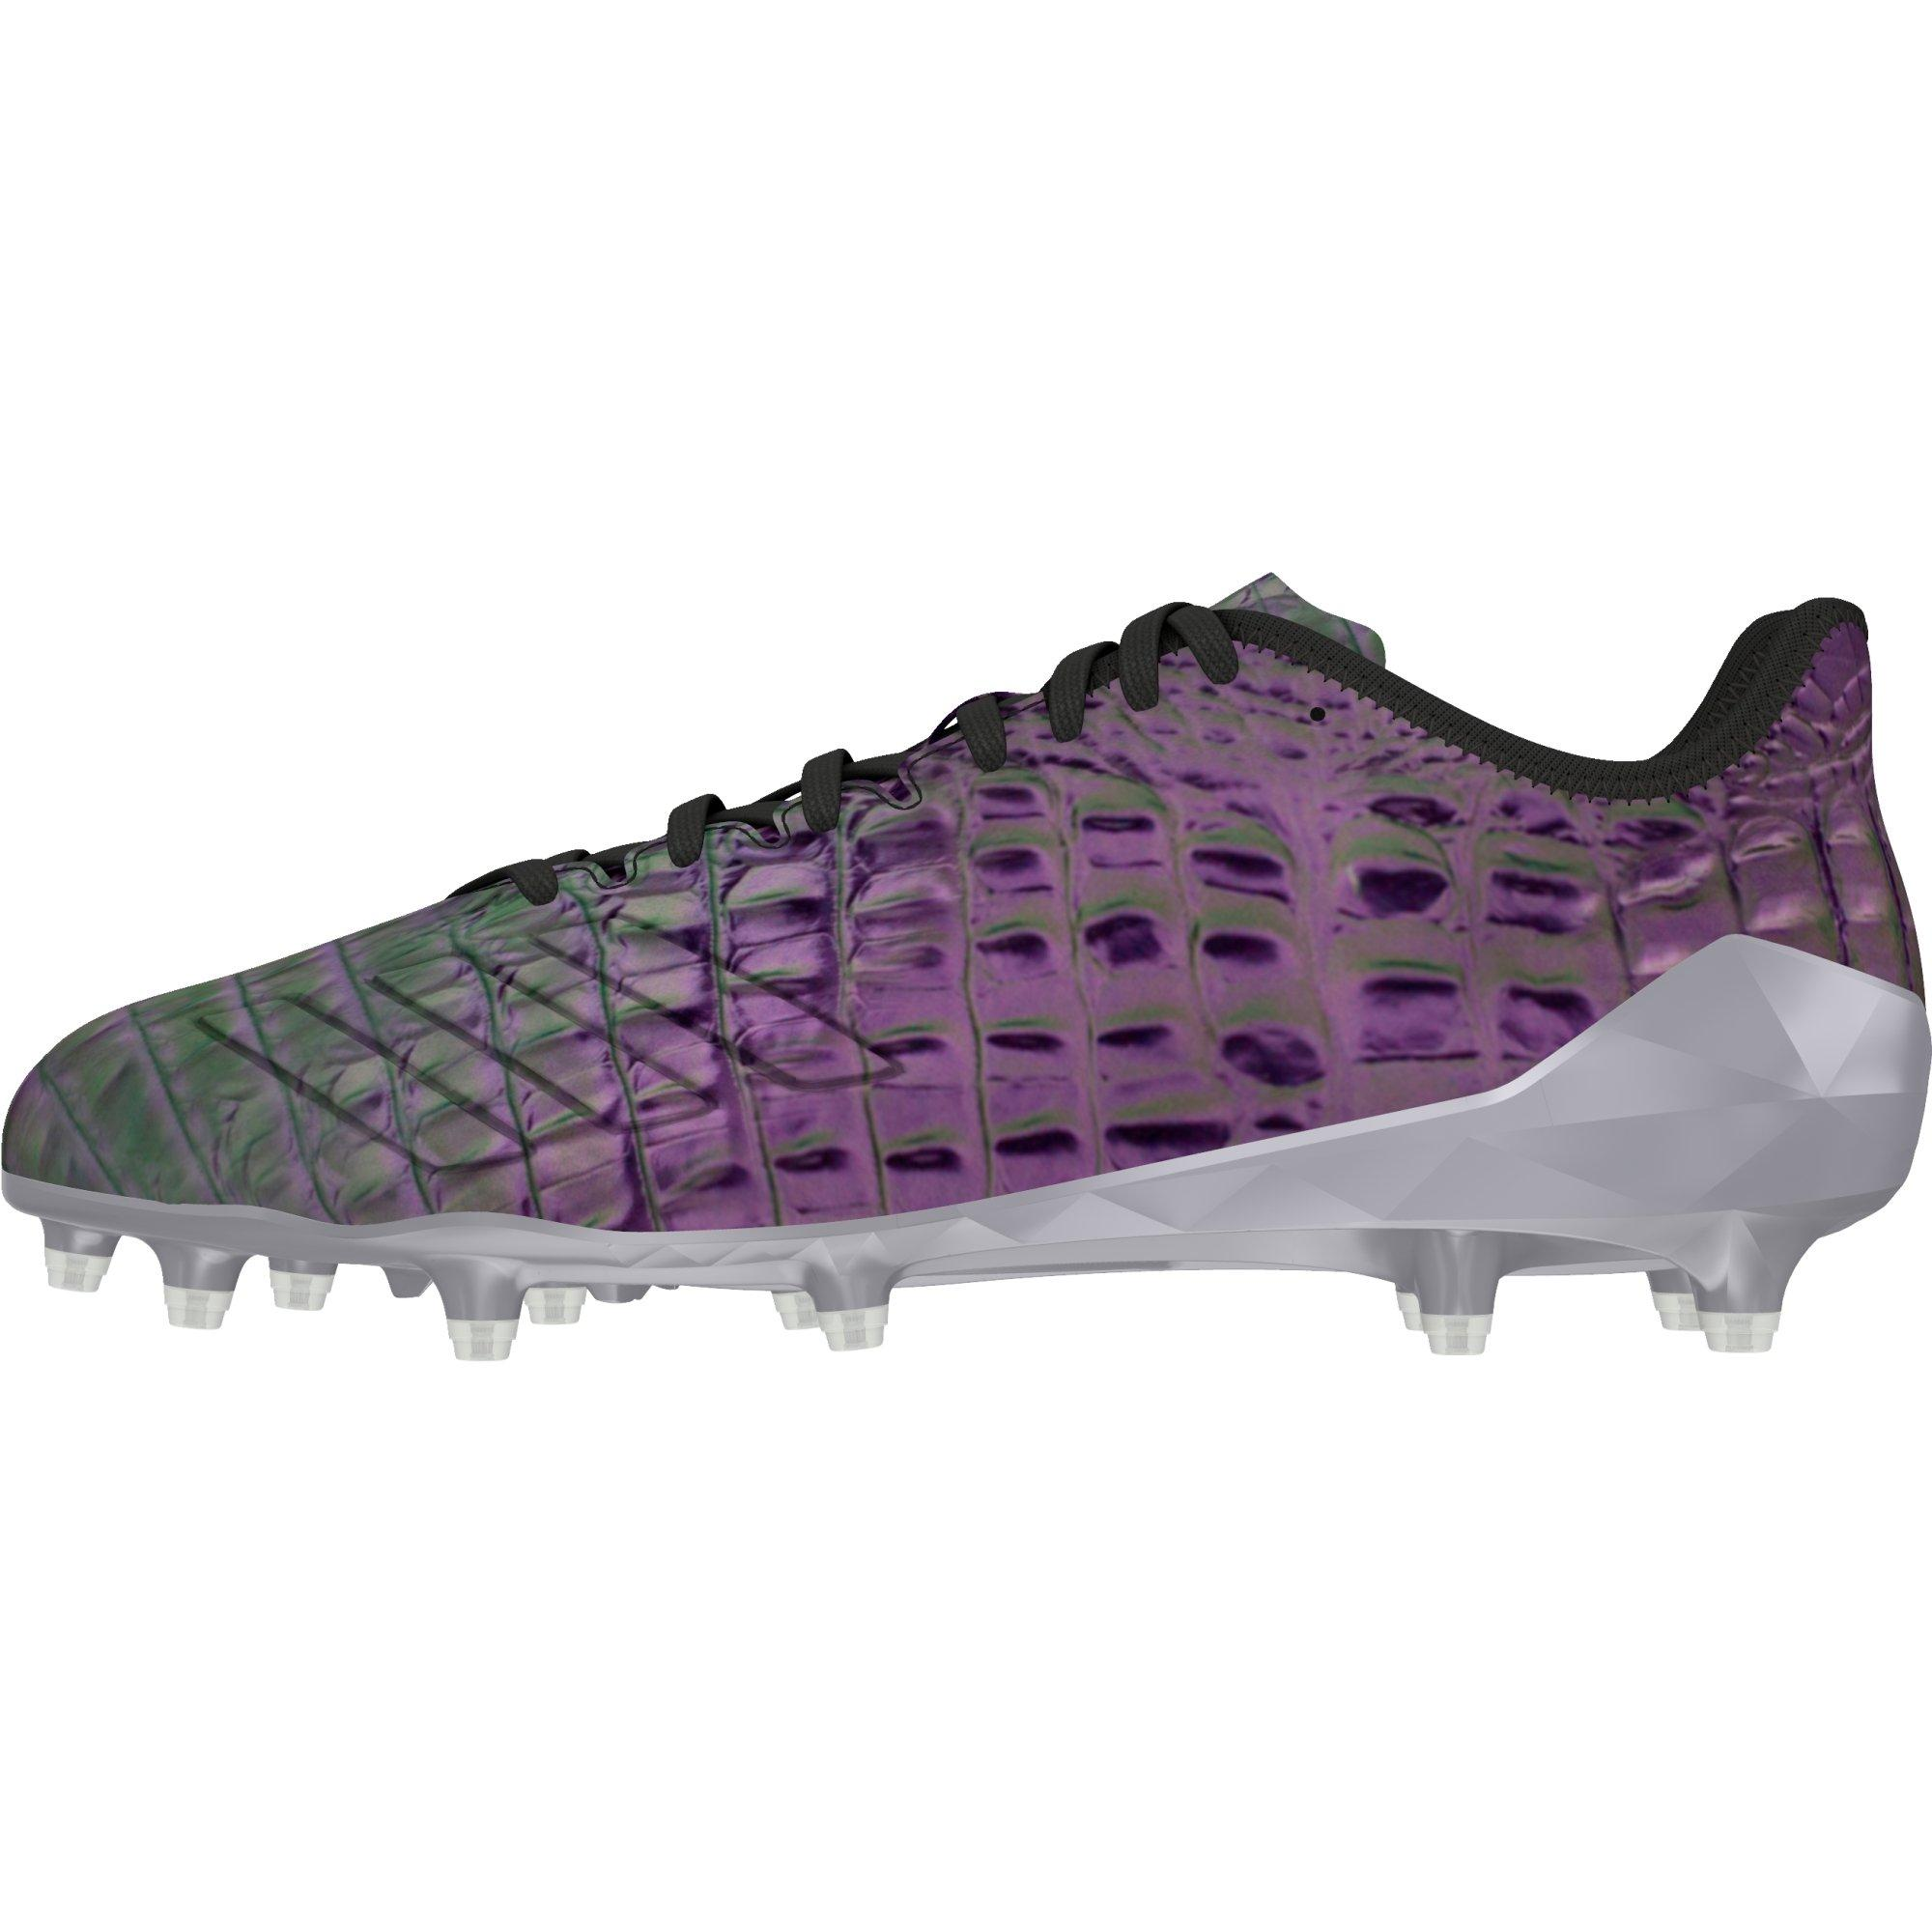 adidas 6 0 football cleats men. football cleats adidas freak uncaged devil mens latest trends 6 0 men